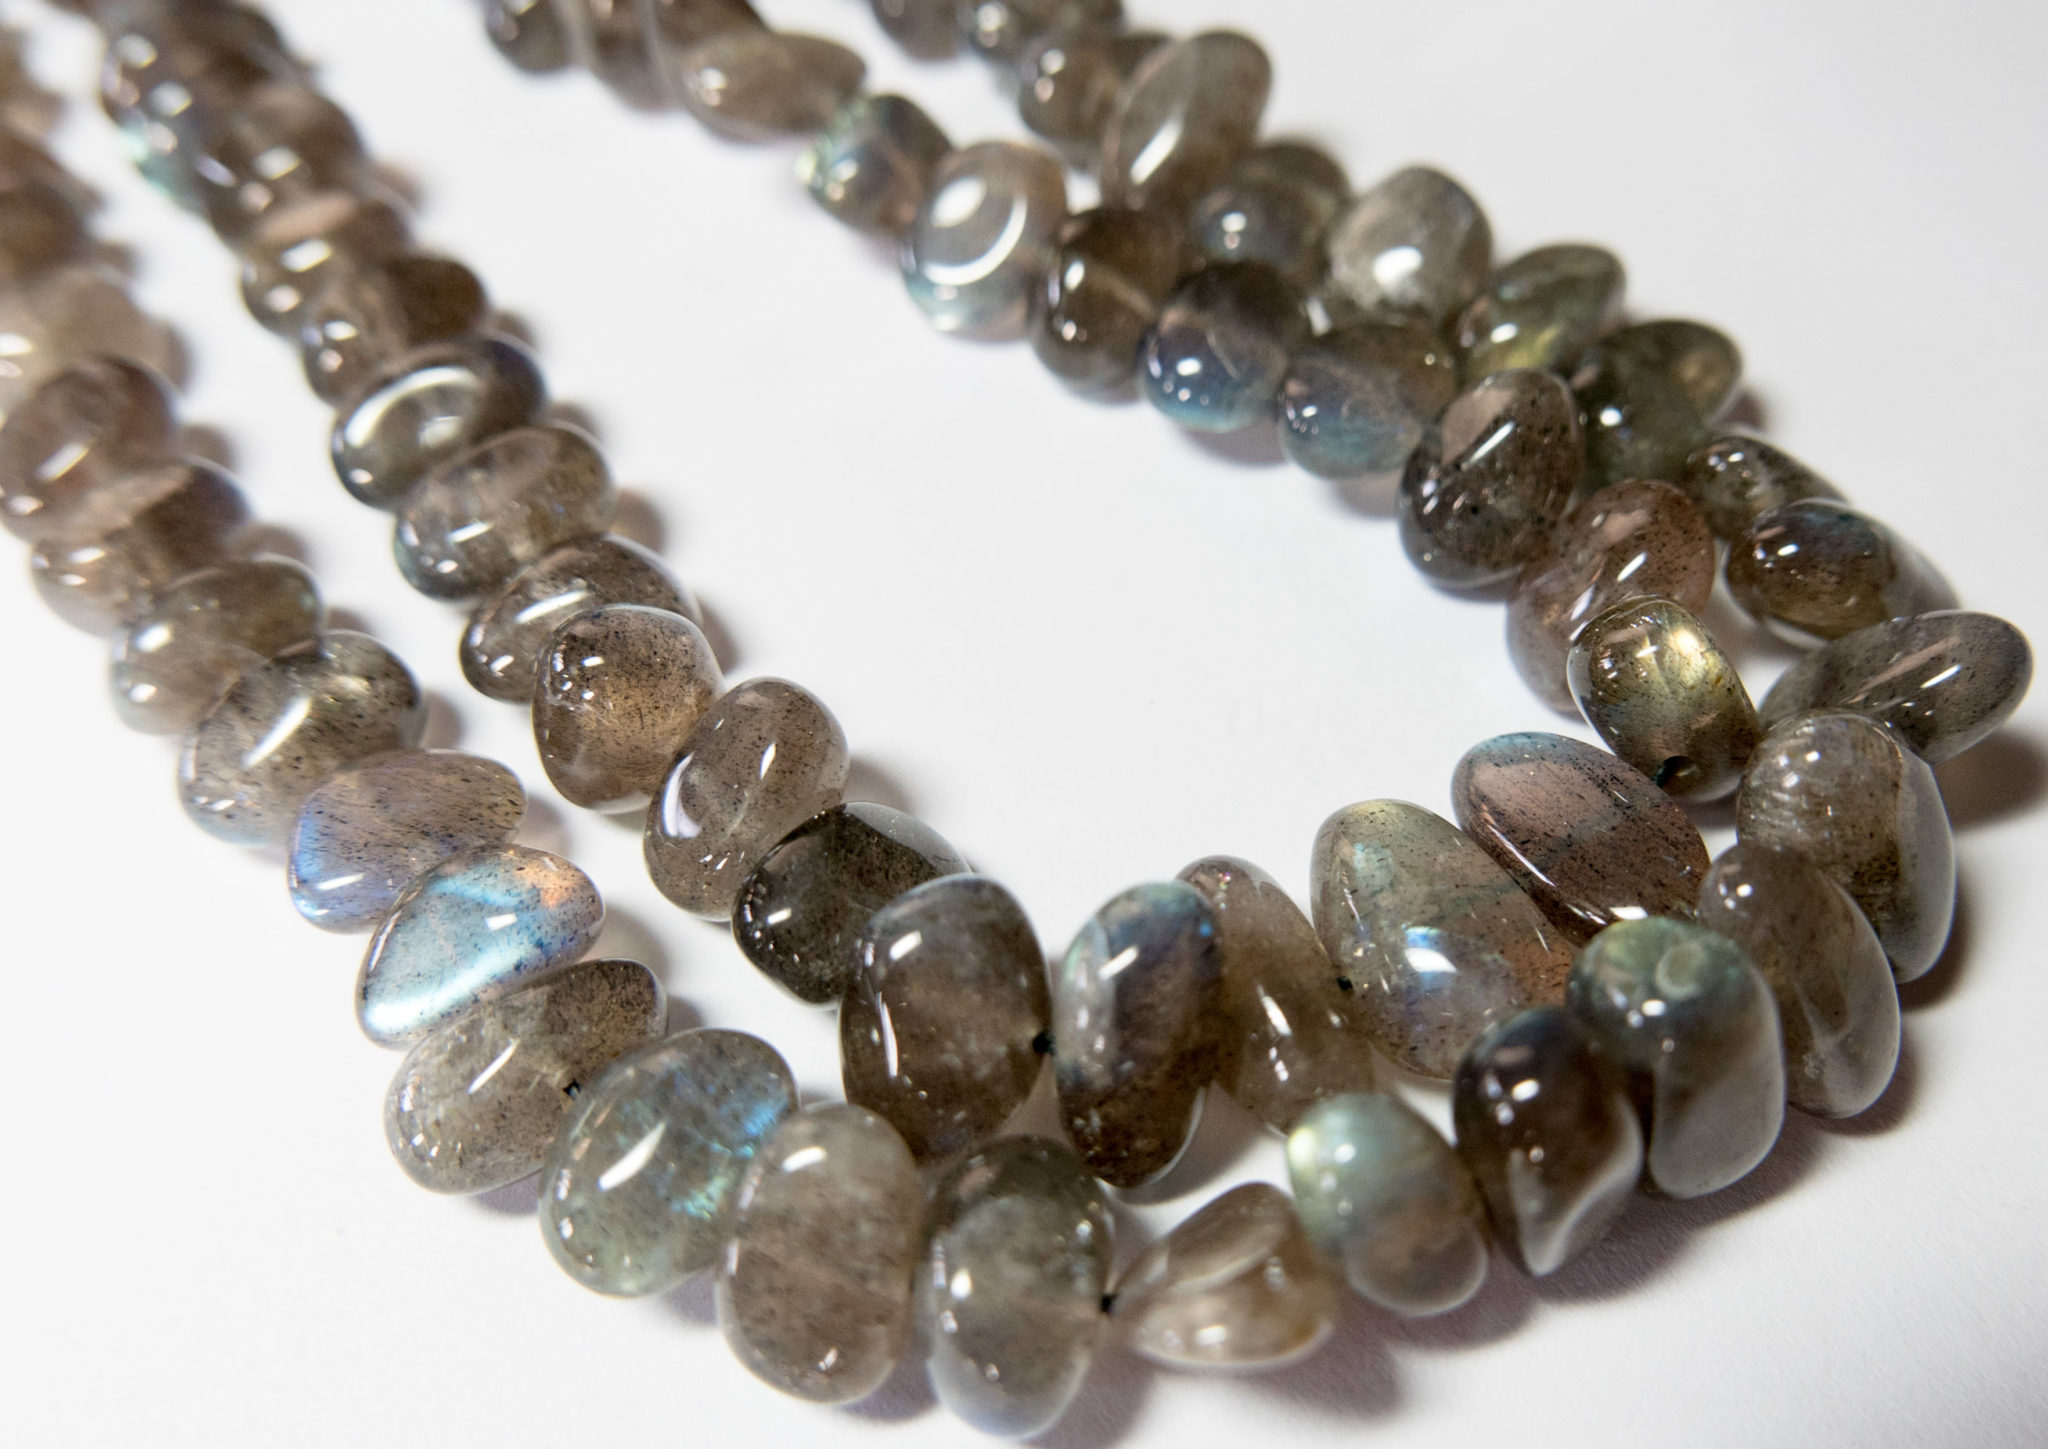 gemstone gifts bracelet product sunstone elastic natural store labradorite bracelt wholesale bead beads